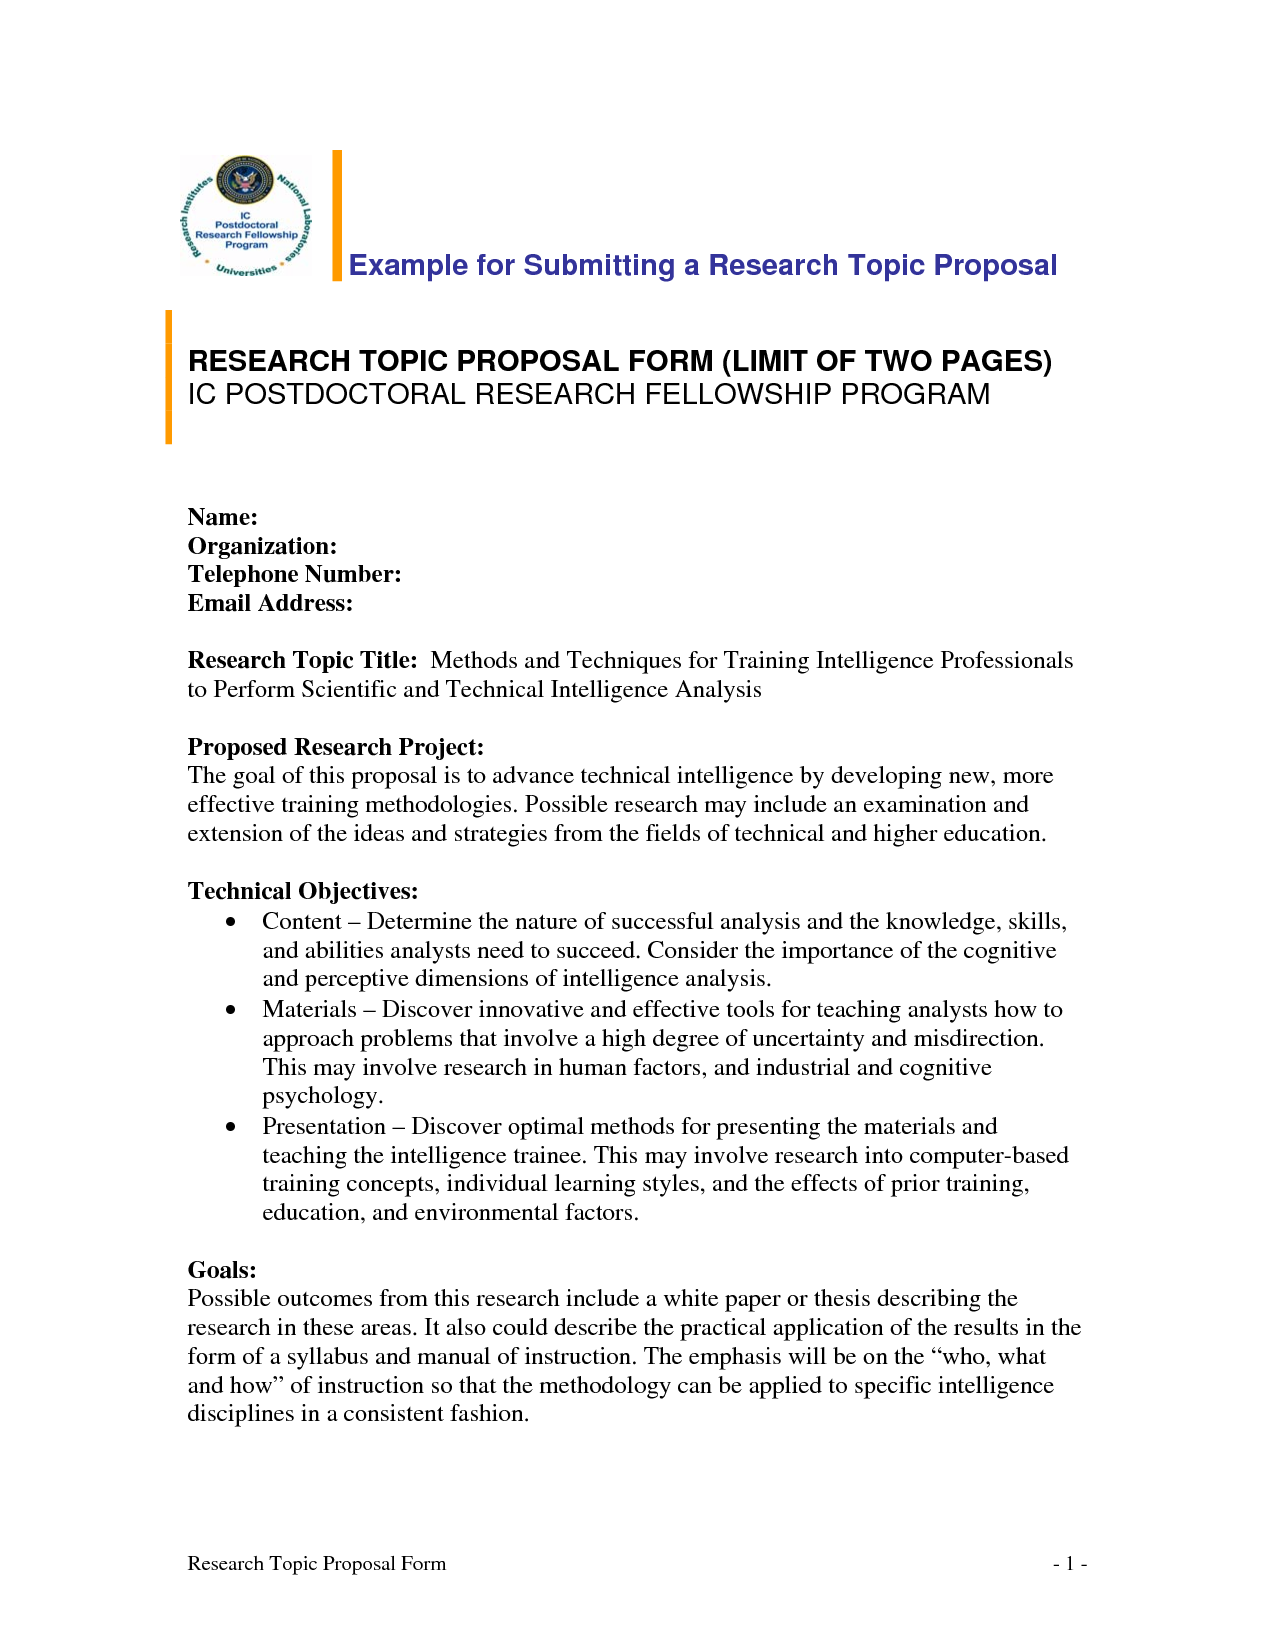 004 interesting proposal essay topics awesome collection of possible